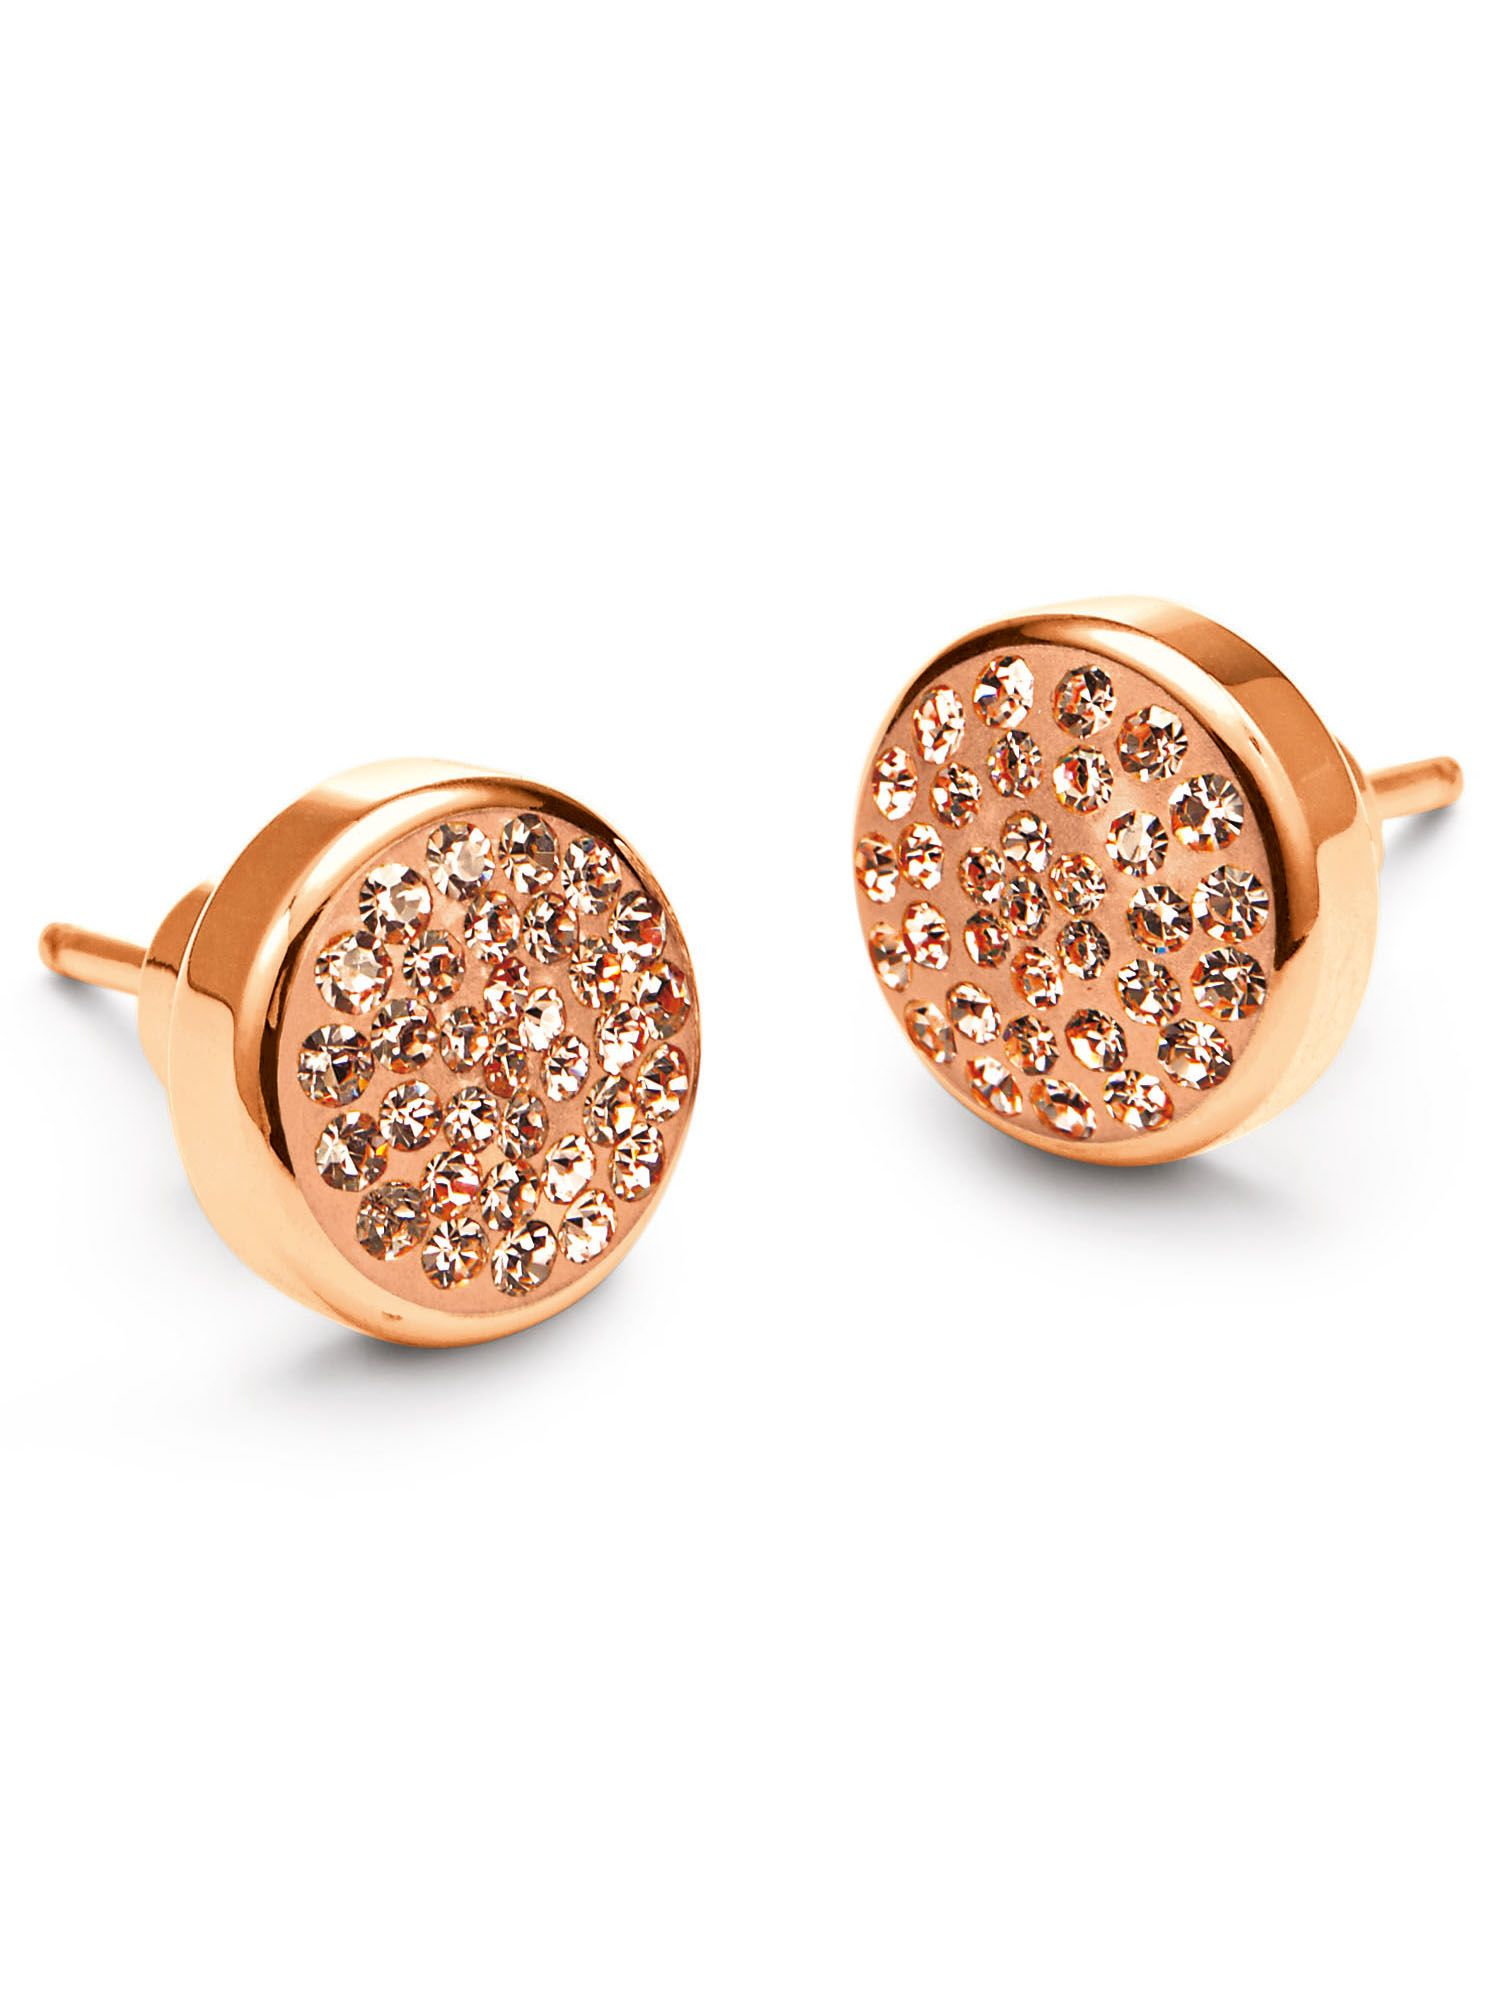 Bling Chic Stud Earrings